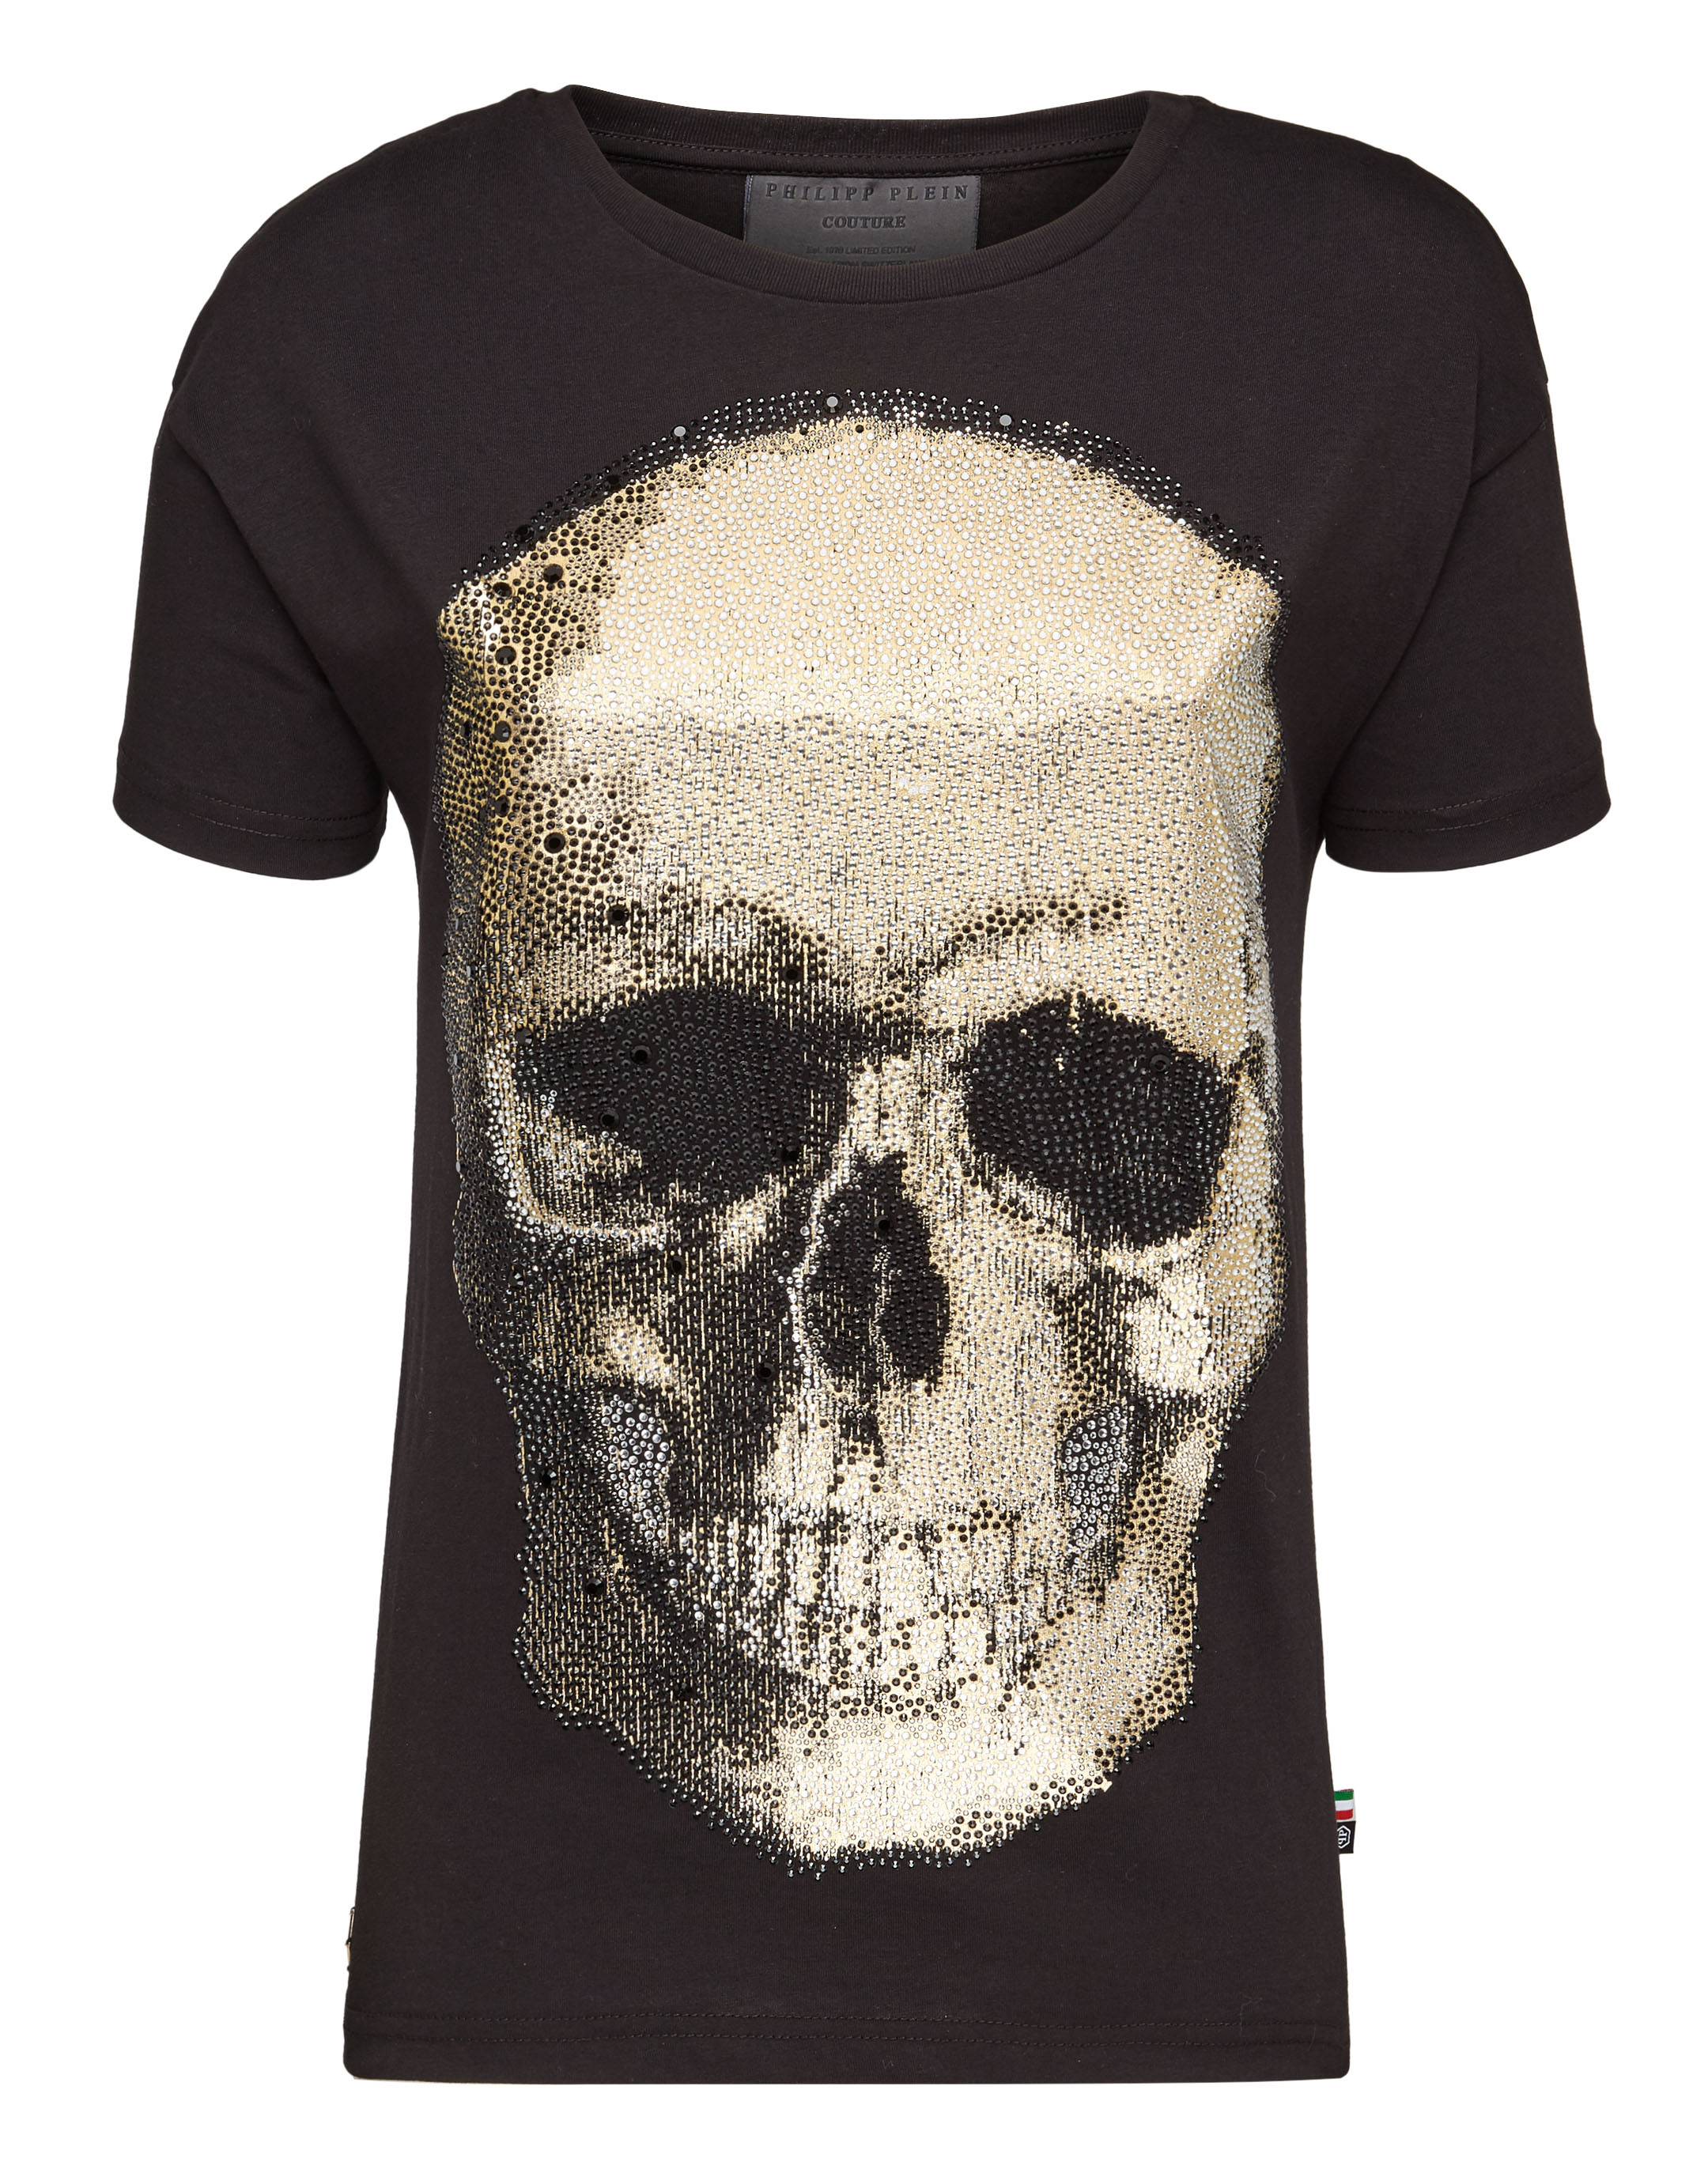 "T-Shirt Original Cut Round Neck ""Shiny Skull"", Black"